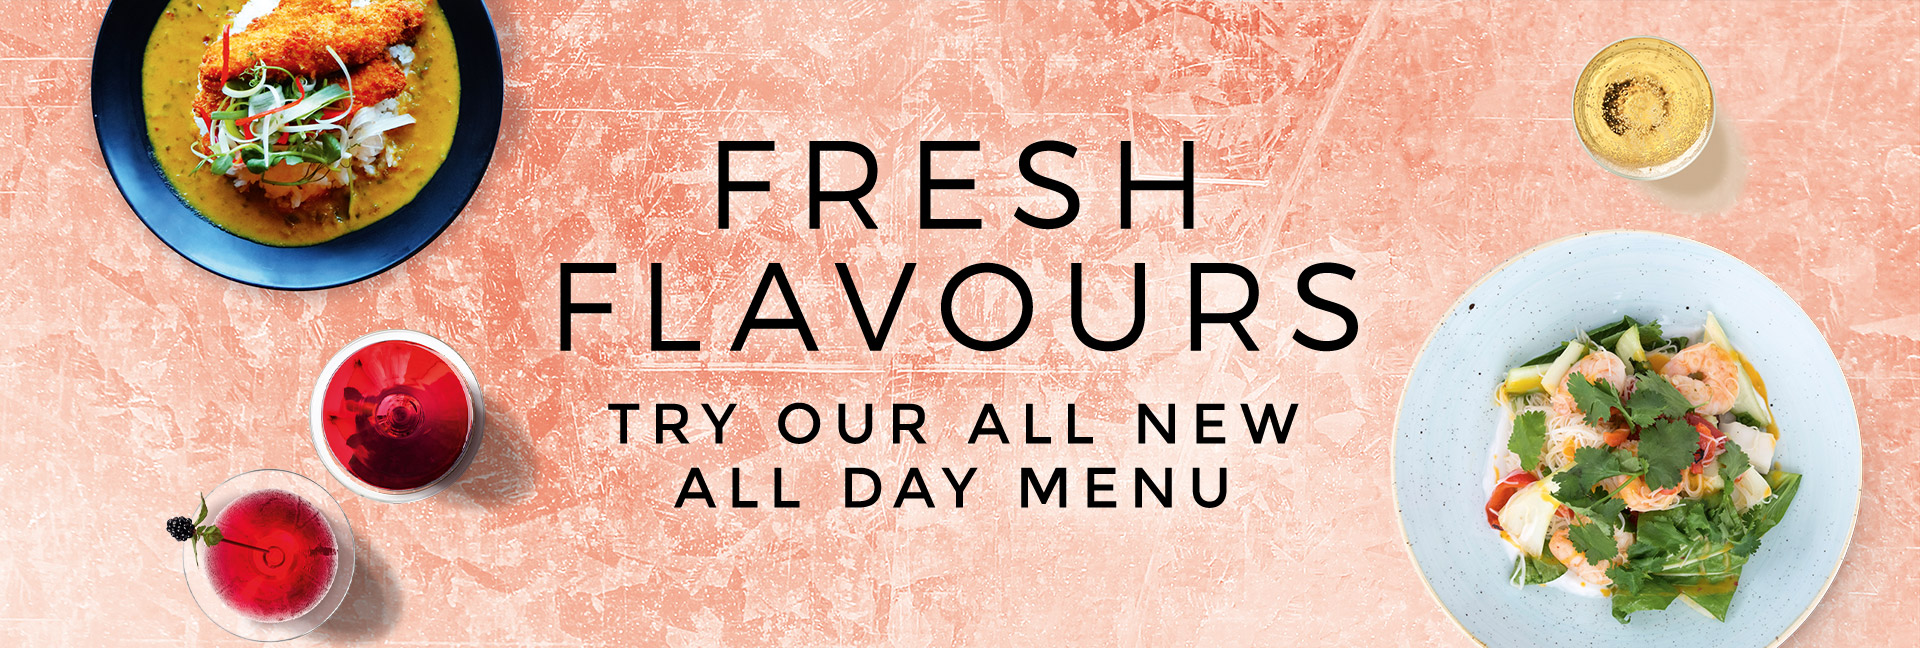 New Menus at All Bar One Ludgate Hill